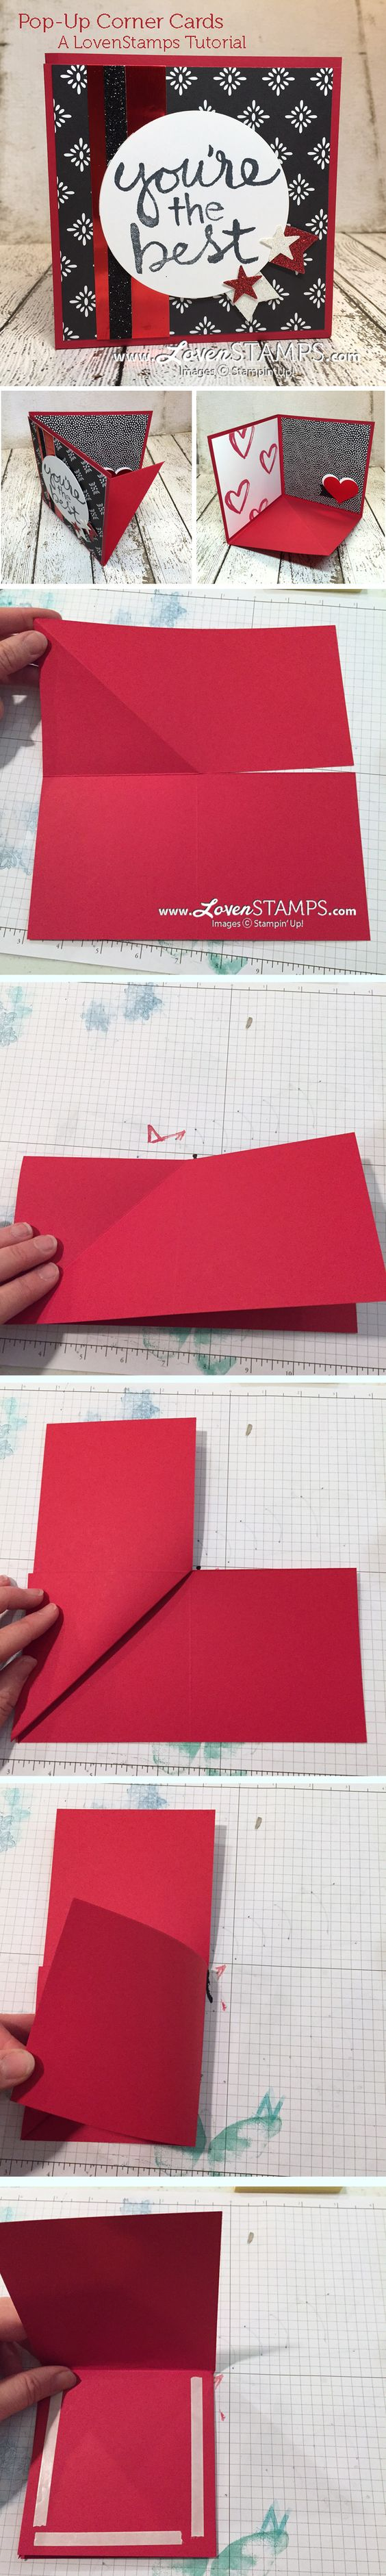 DIY Pop-Up Corner Card.